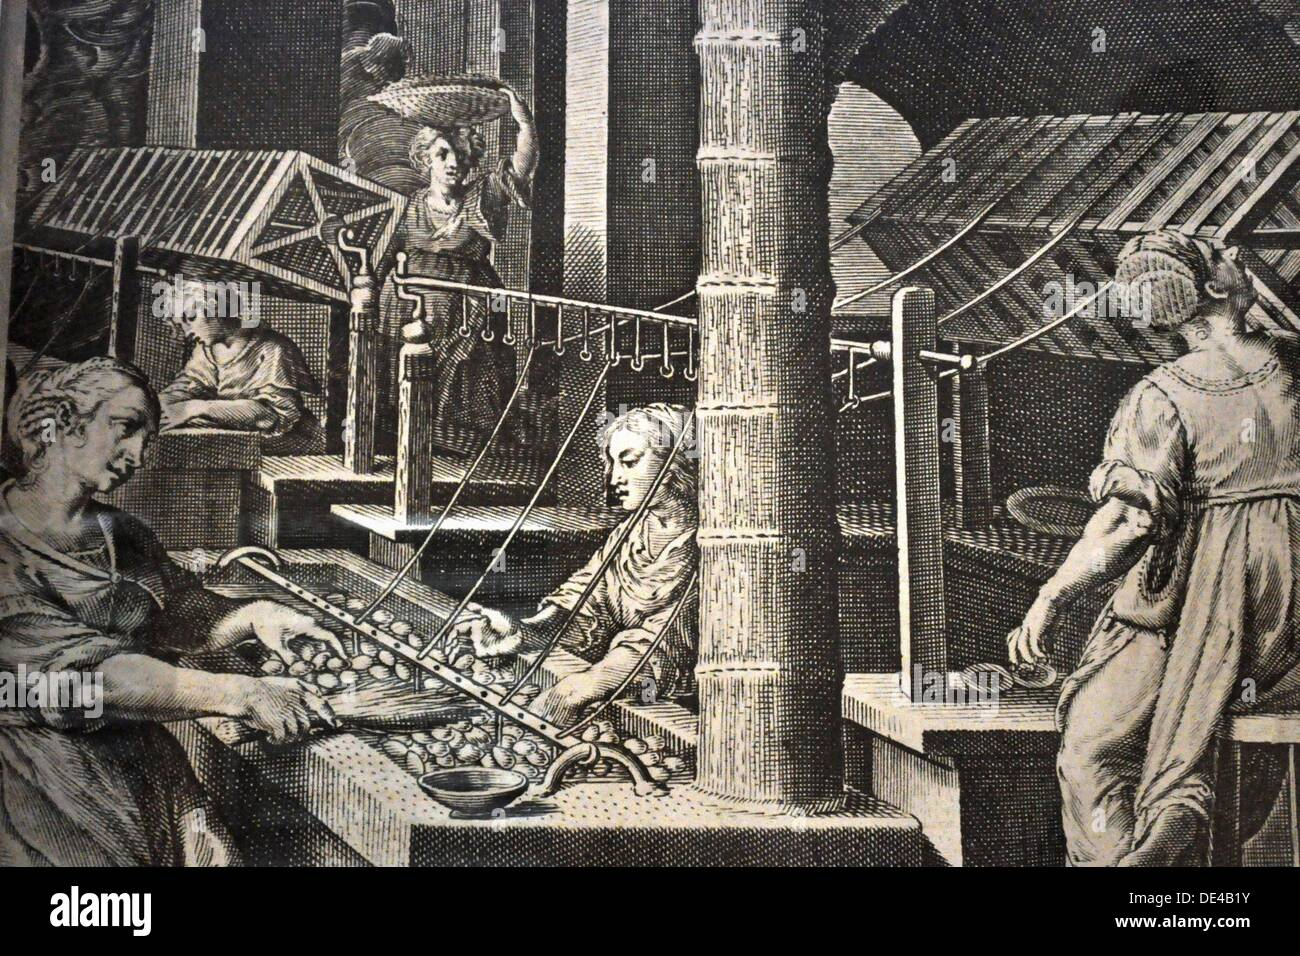 Bologna (Italy): old print on the city's ancient silk industry at the Museo della Tappezzeria (Tapestry Museum, Villa Spada) - Stock Image